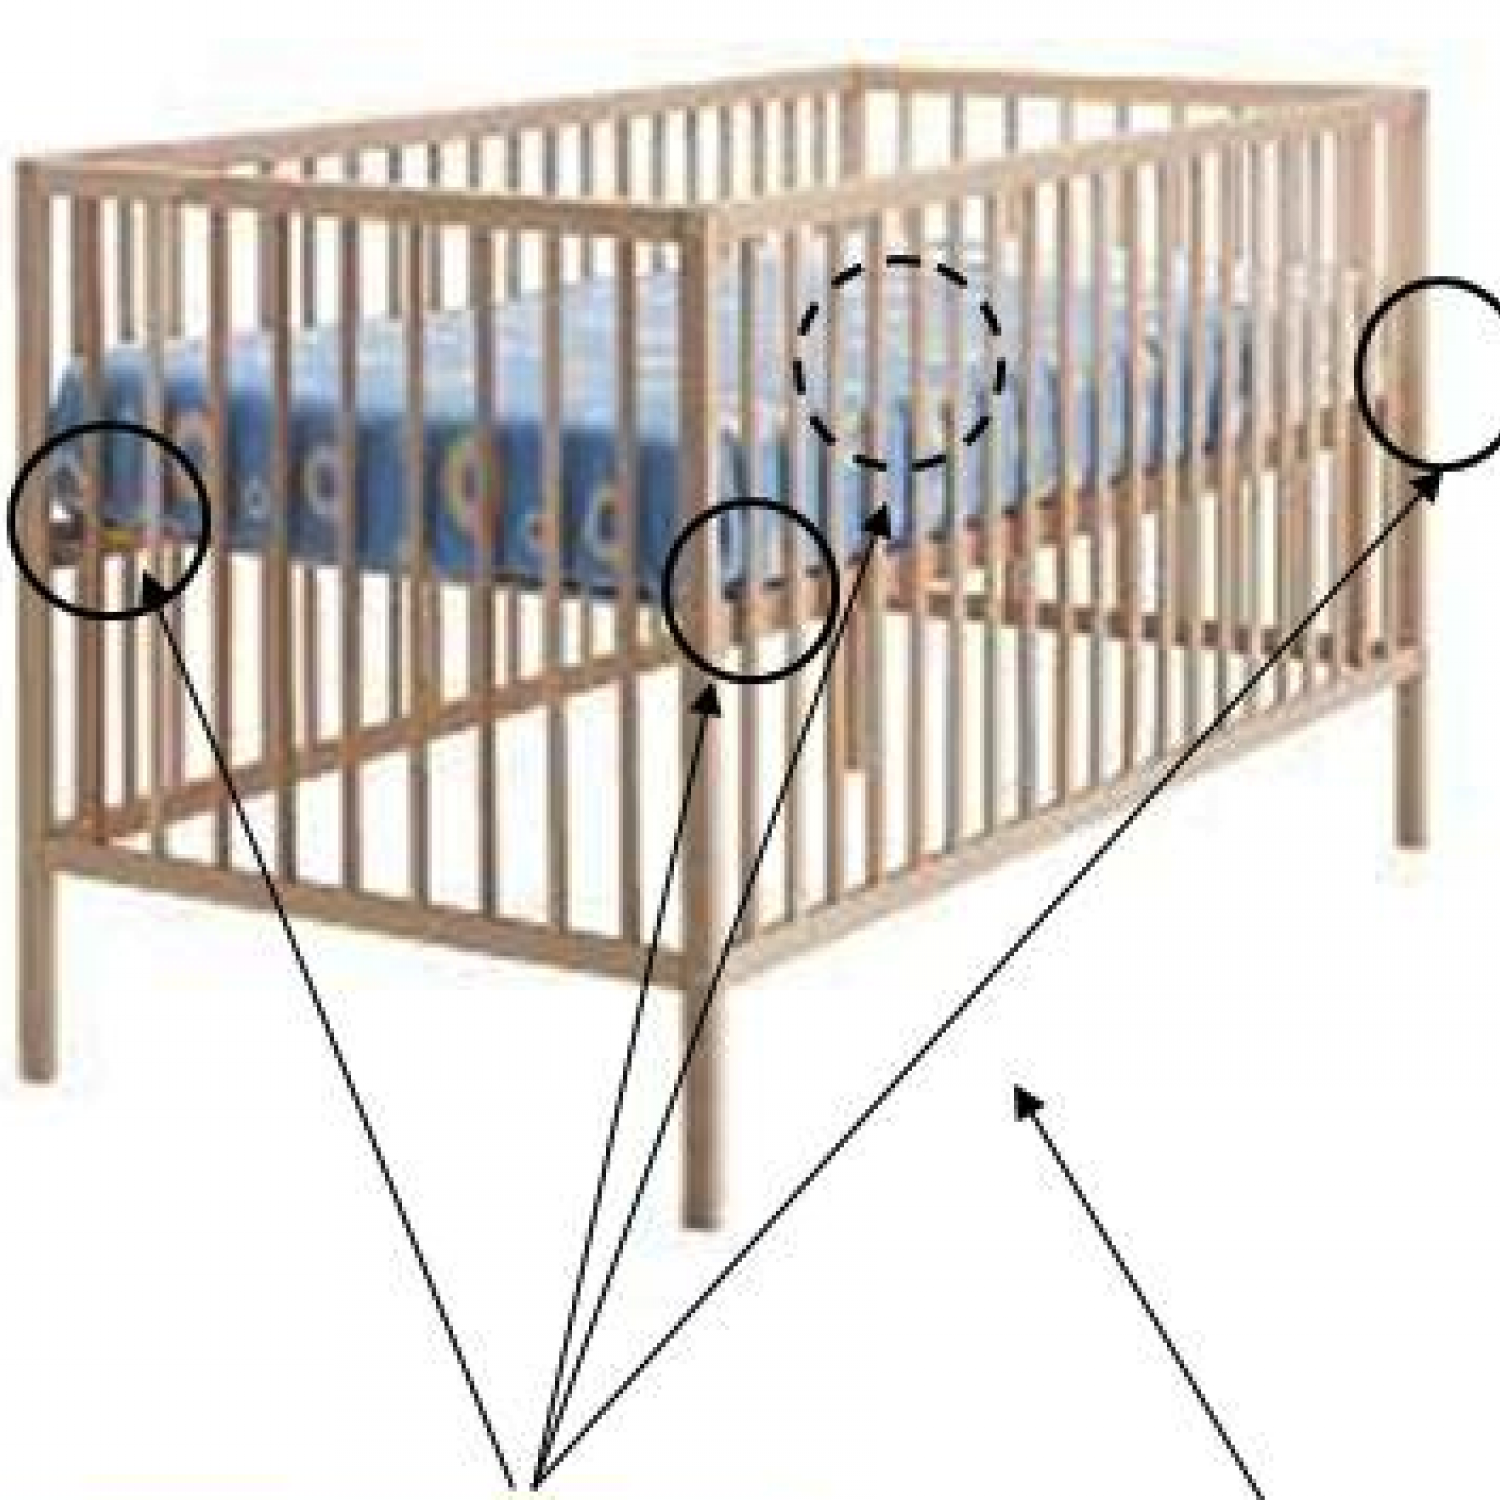 with to mattress design bradford beautiful crib elizabeth in ii davinci sorelle rail storage toddler ikea delta leons craft panel grande cloud rails convertible bed cameron convertibleler baby graco guard child